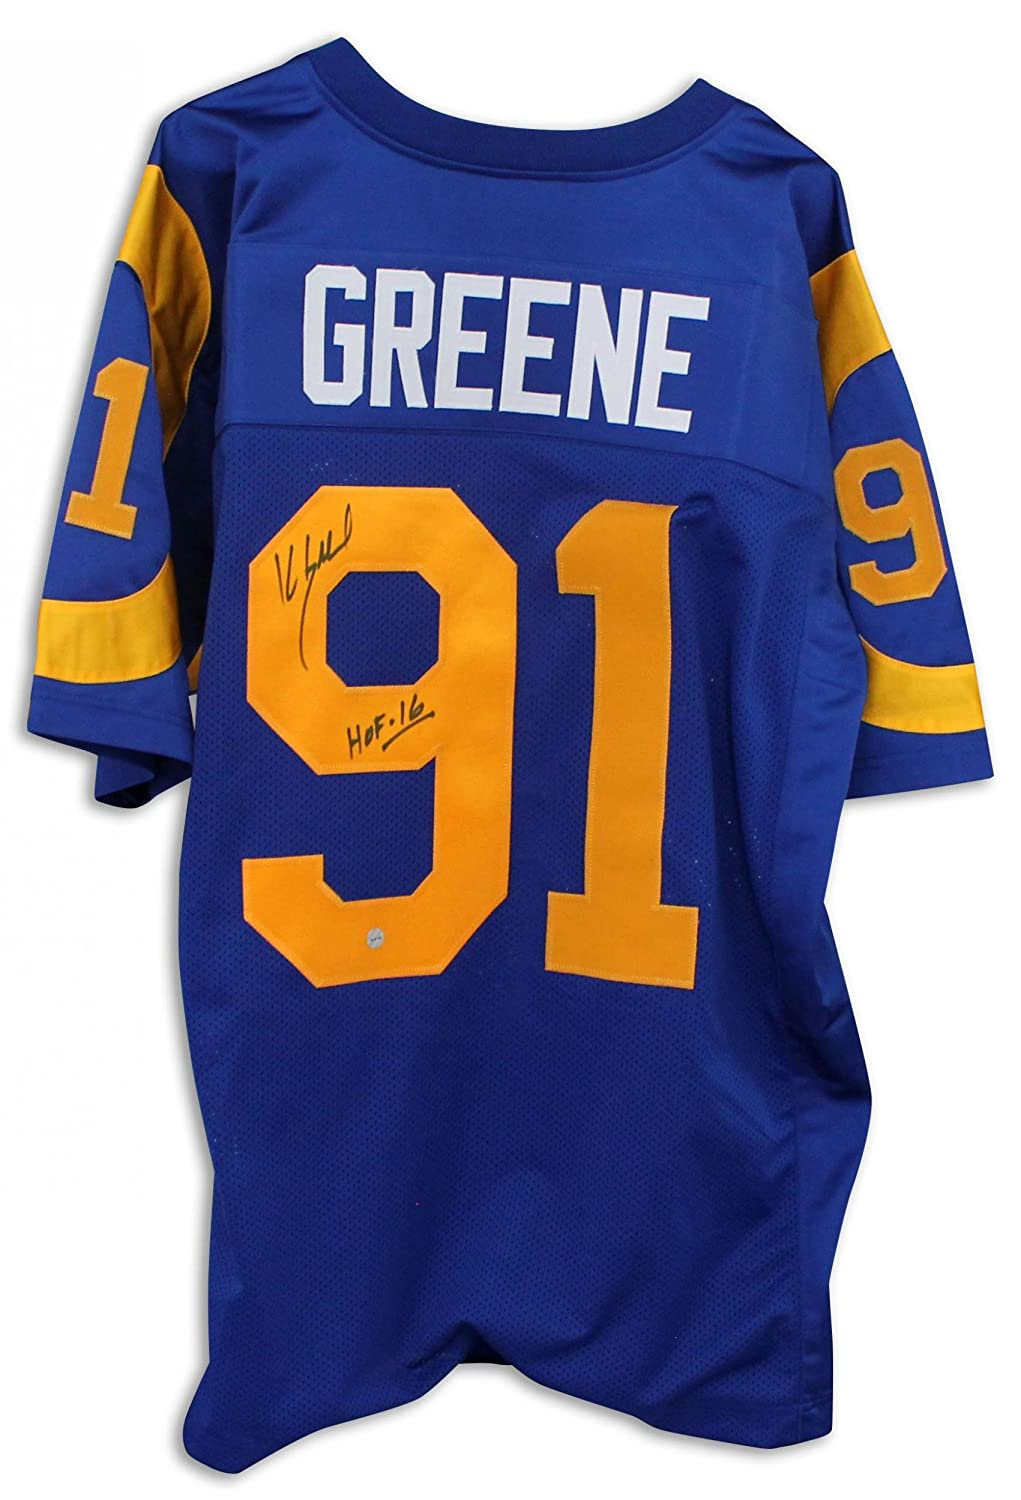 new style 731d2 1a2ec Kevin Greene Los Angeles Rams Autographed Blue Jersey ...